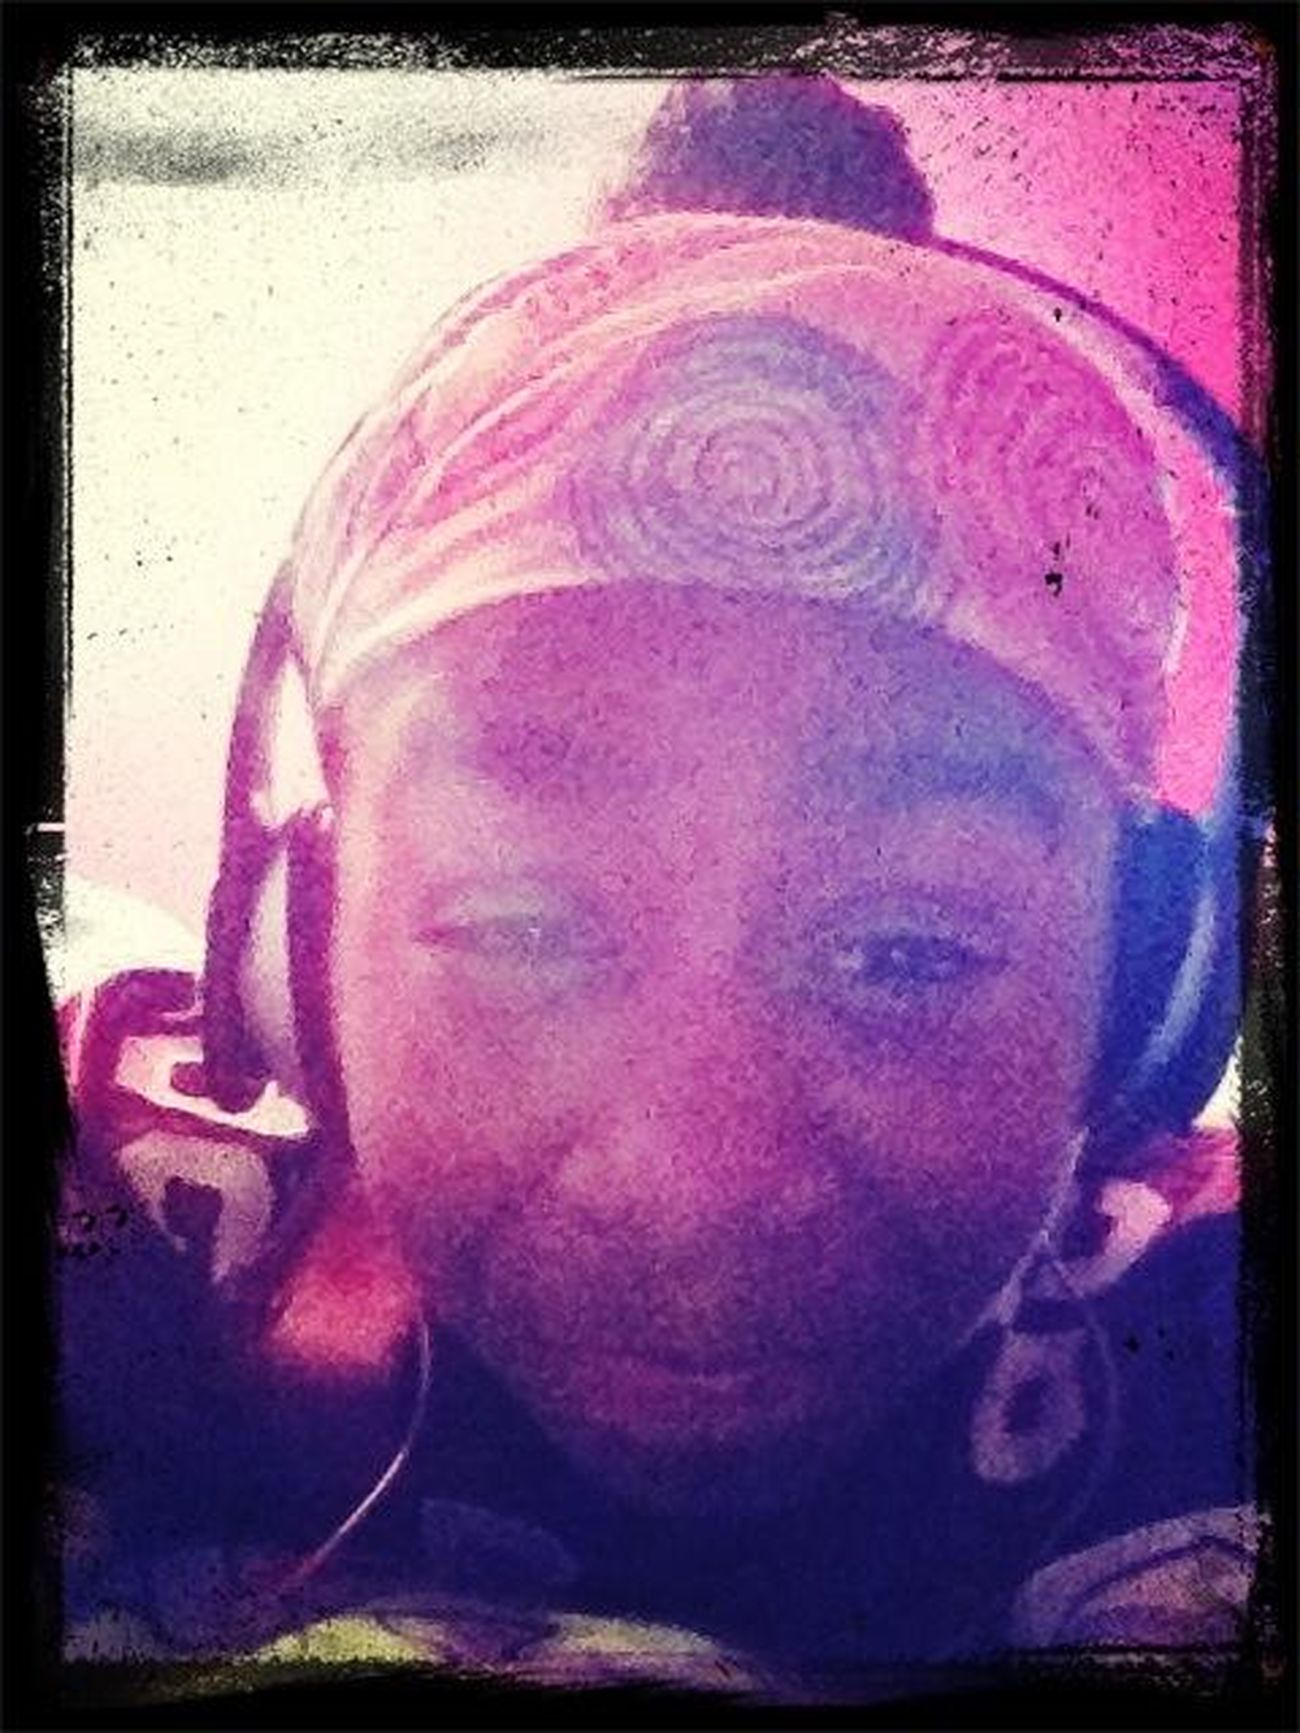 #oovoo #money #insta # Beats